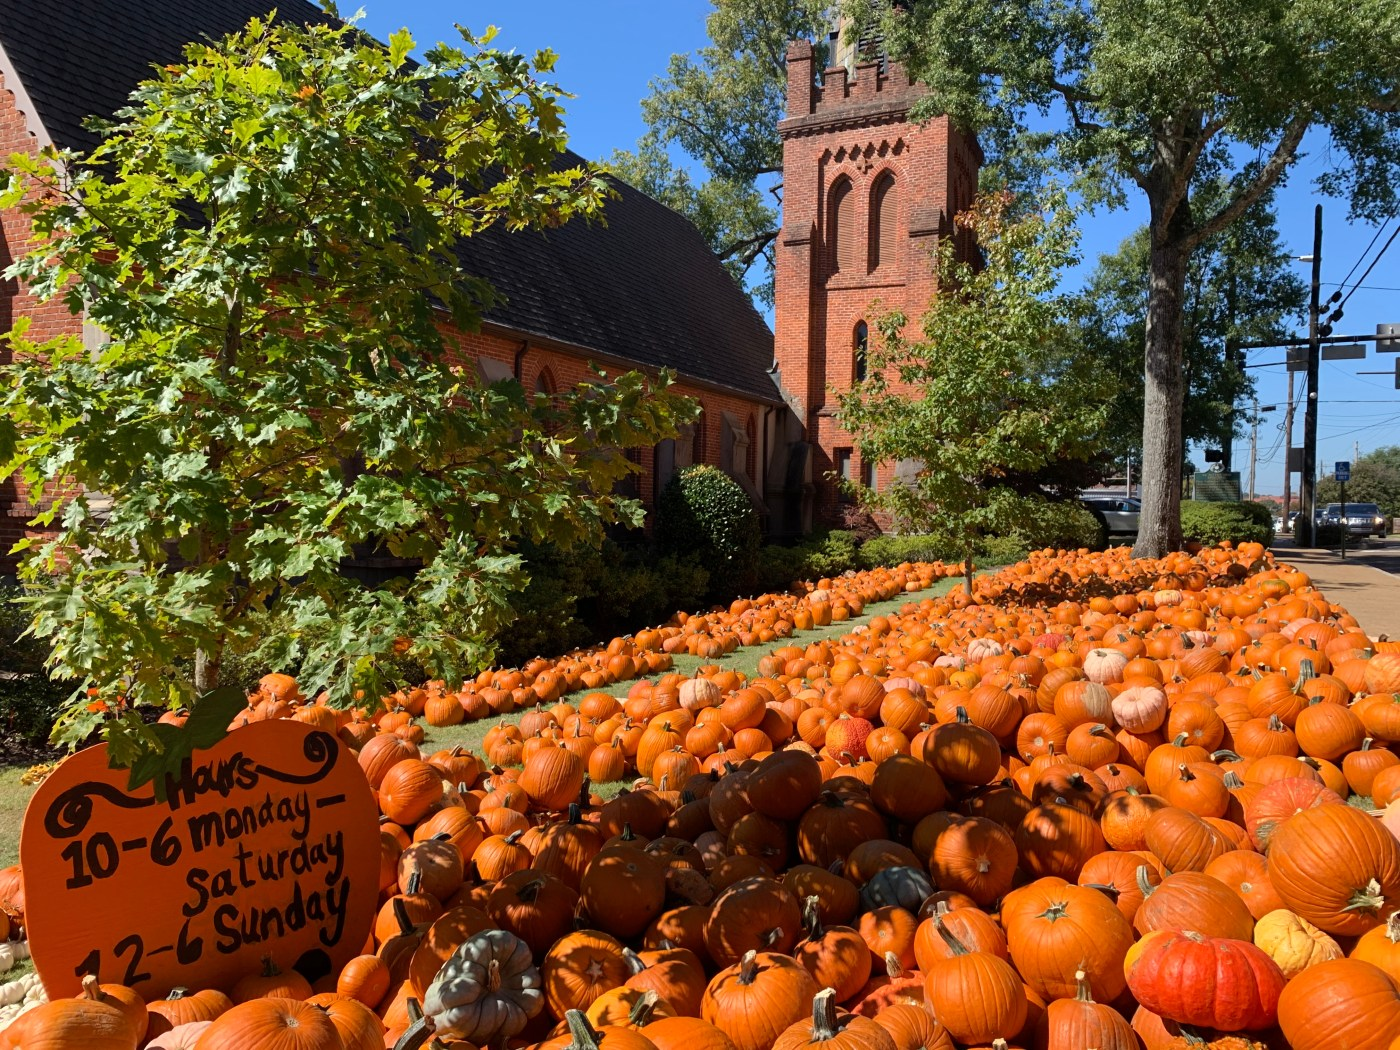 Pumpkin Patch at St. Peter's Episcopal Church in Oxford